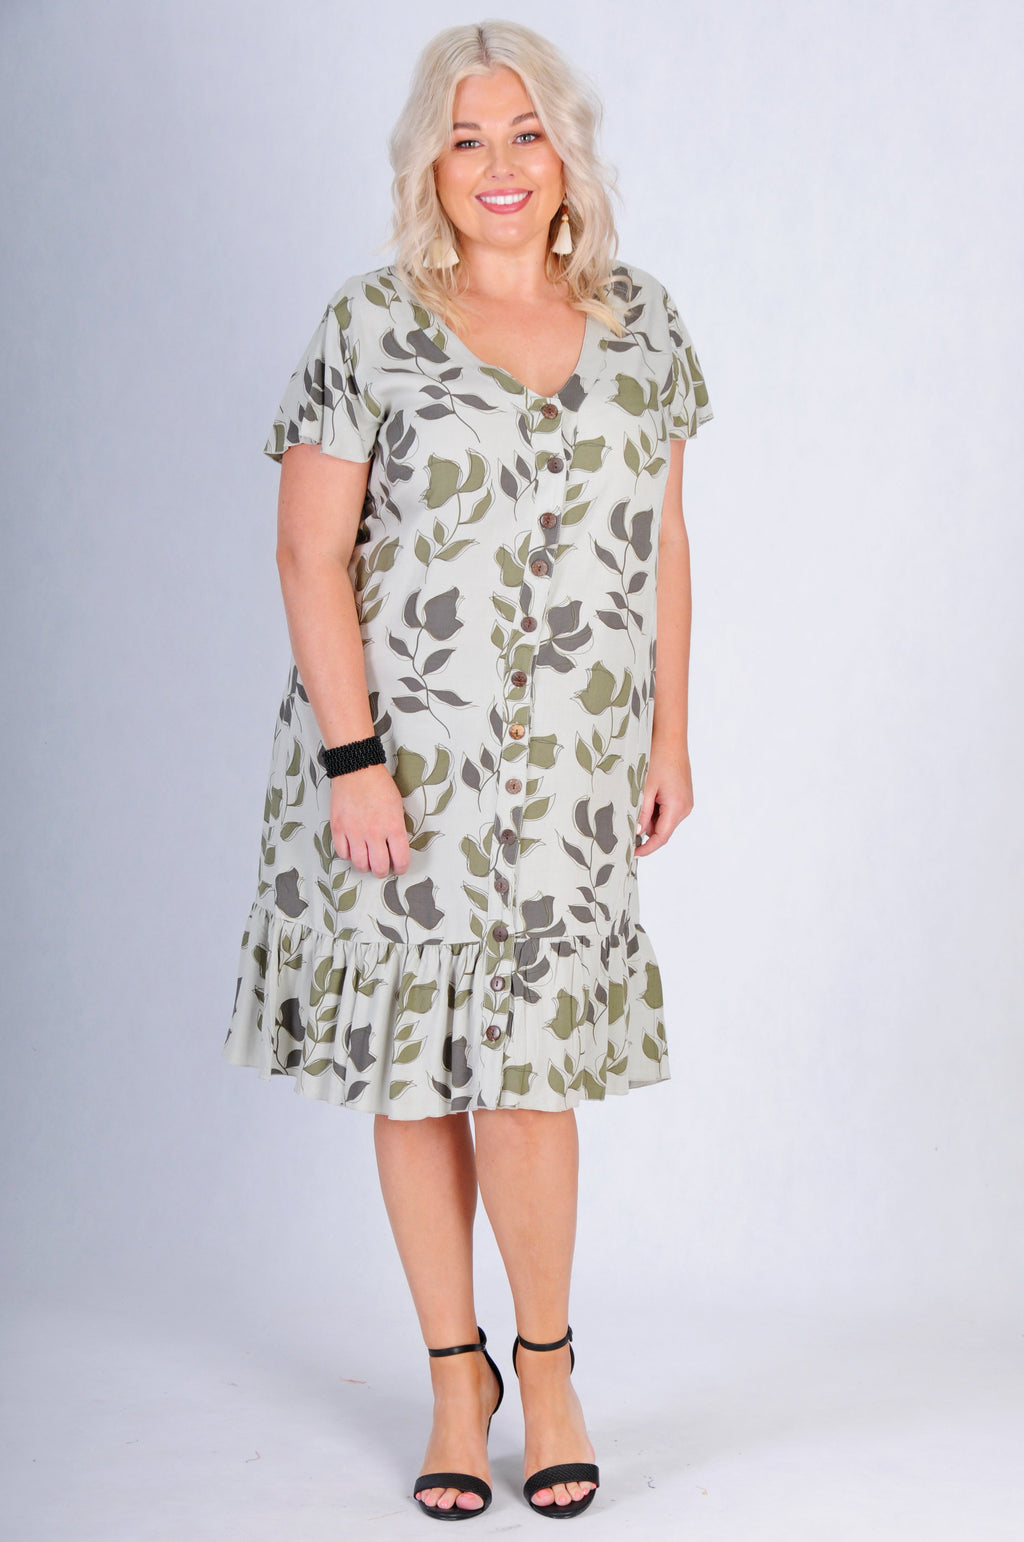 VBLD784 - CAP SLEEVE BUTTON DRESS - KHAKI BLOOM